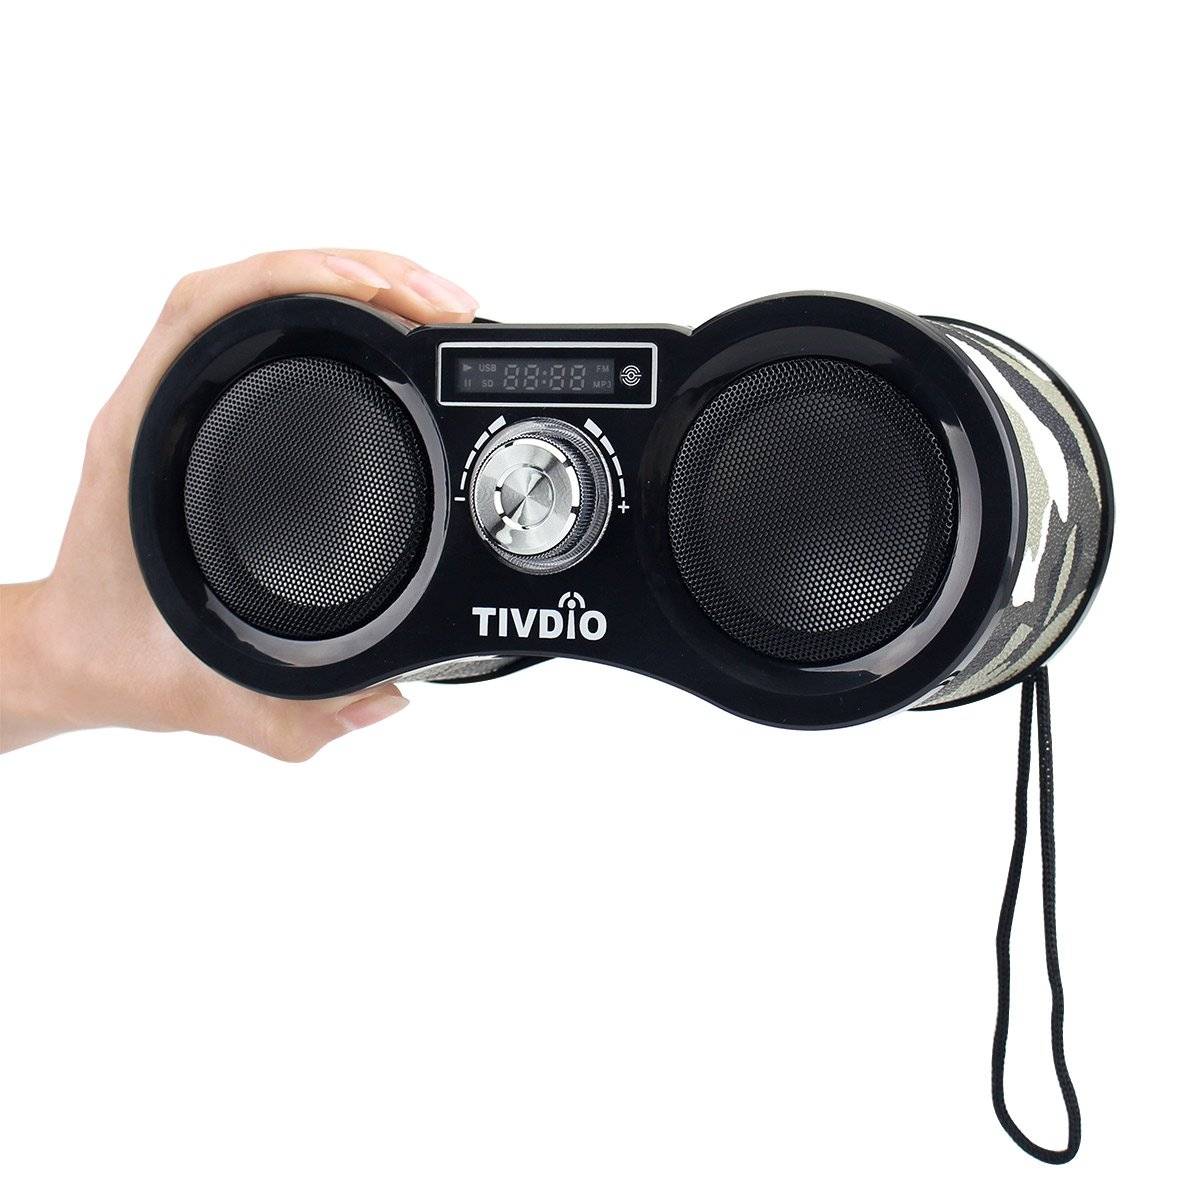 TIVDIO V-113 Portable Transistor FM Stereo Radio Support Mp3 Music Player Speaker Micro SD IF Card Aux Line In Remote(Camouflage) by TIVDIO (Image #6)